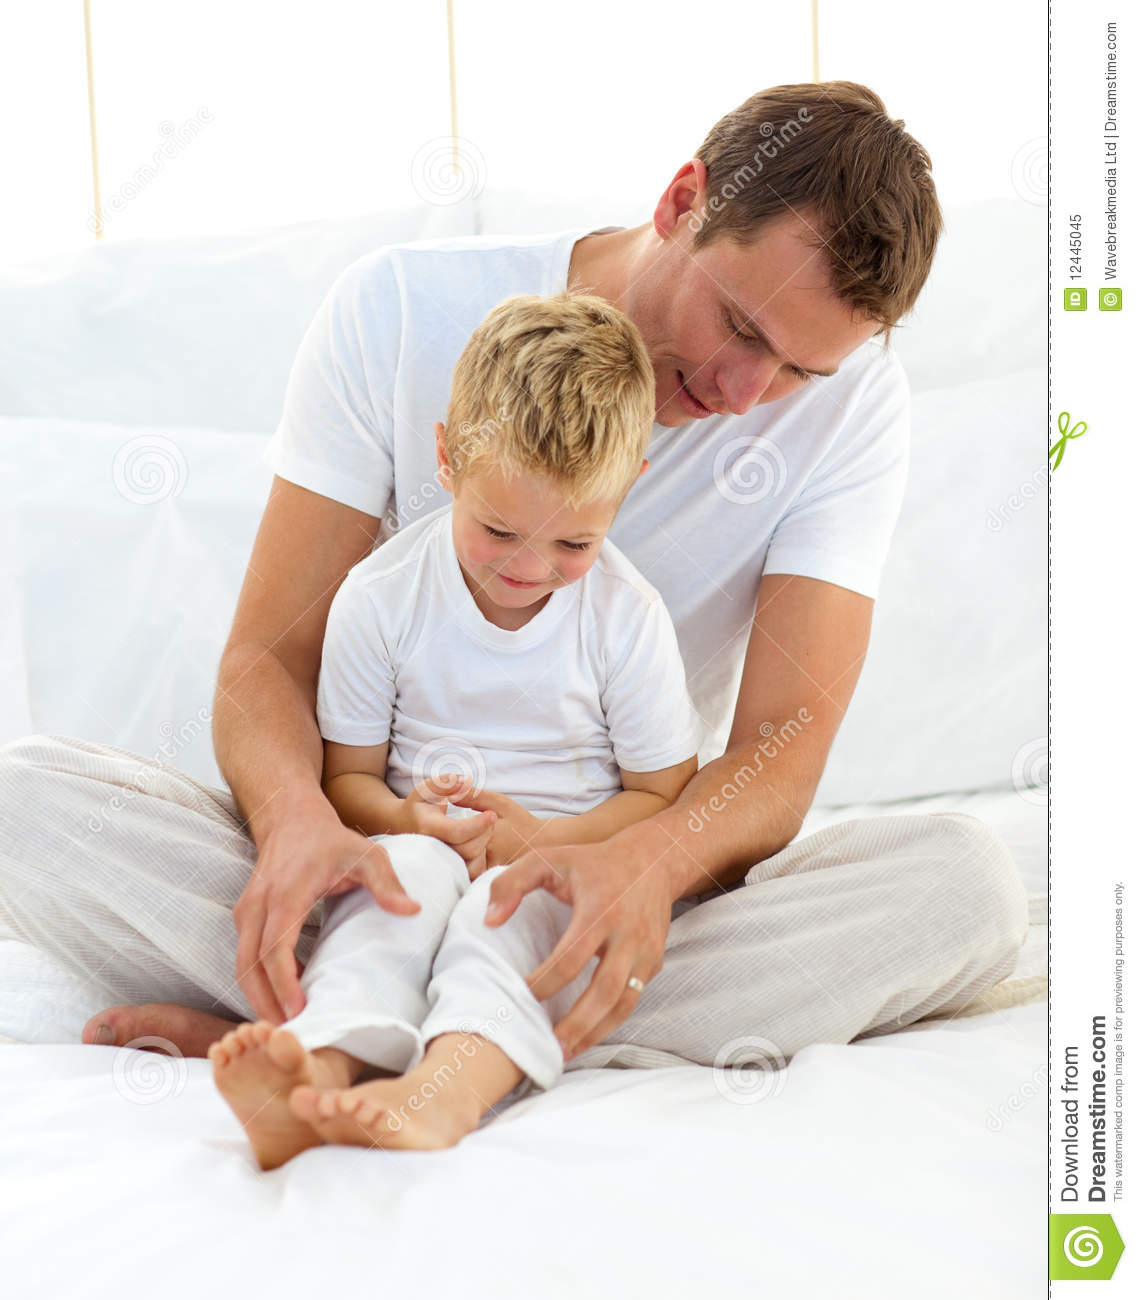 attentive dad hugging his son stock image image 12445045. Black Bedroom Furniture Sets. Home Design Ideas